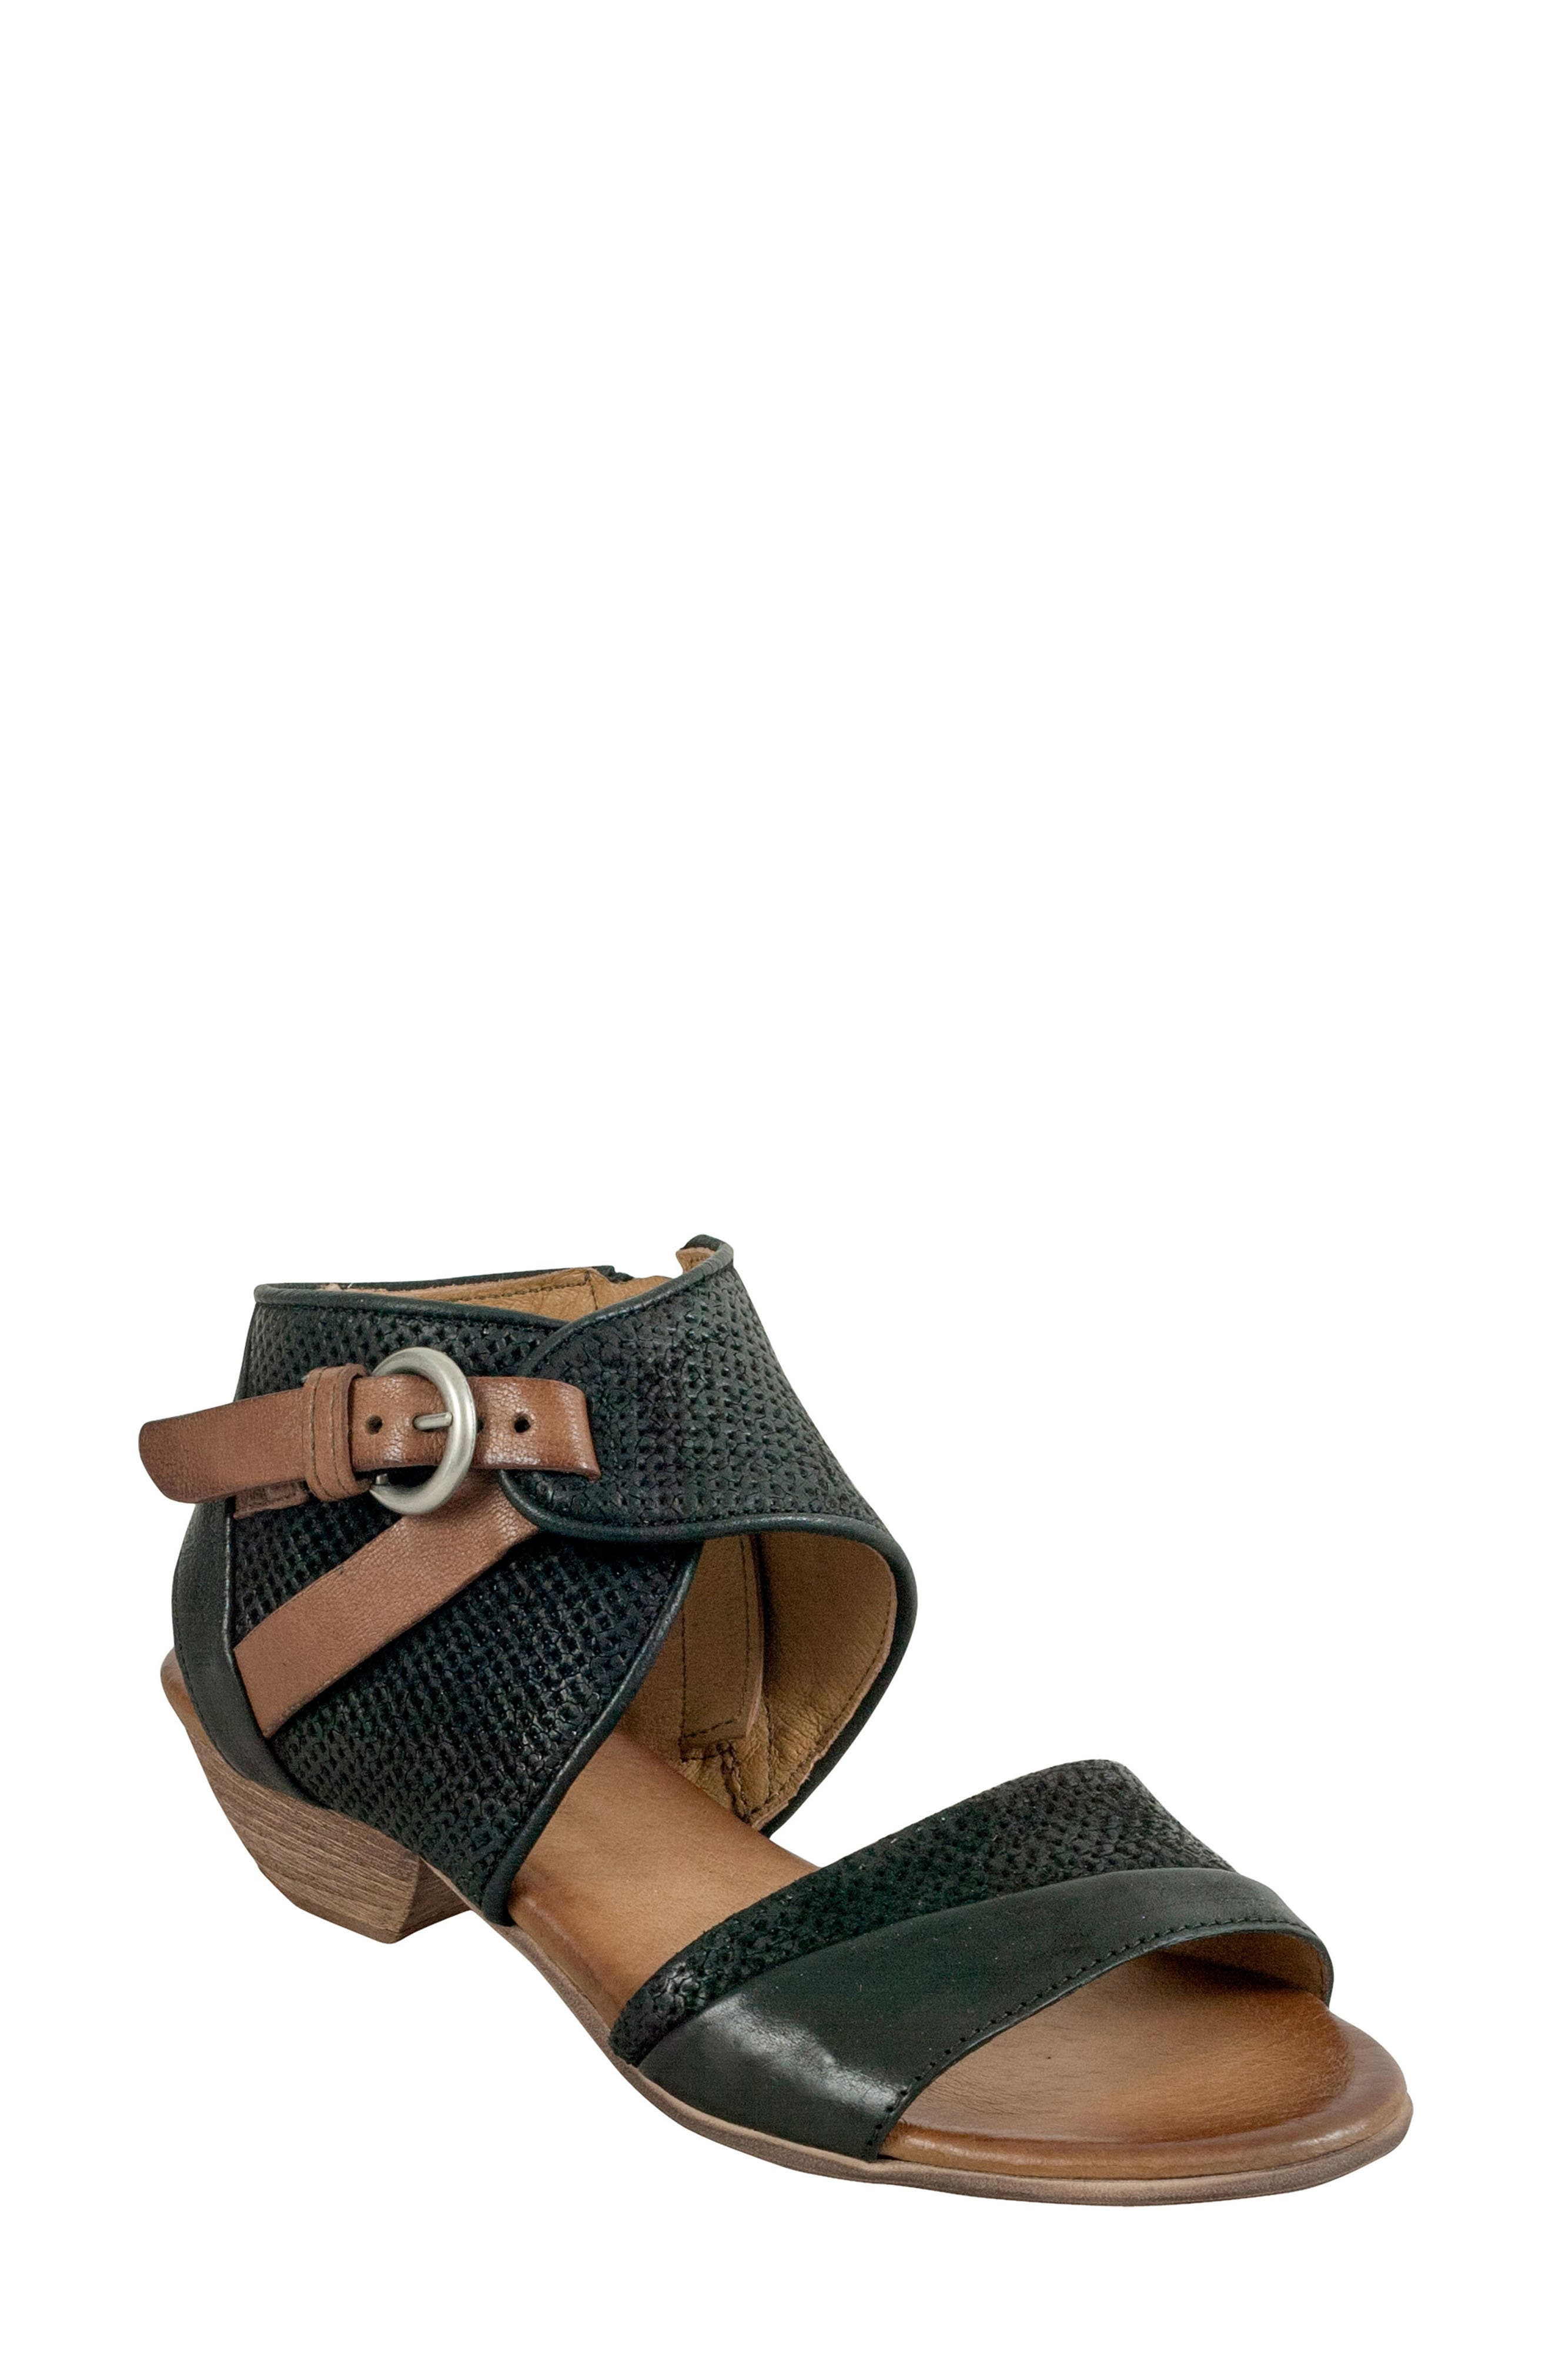 Miz Mooz Chatham Textured Sandal (Women)